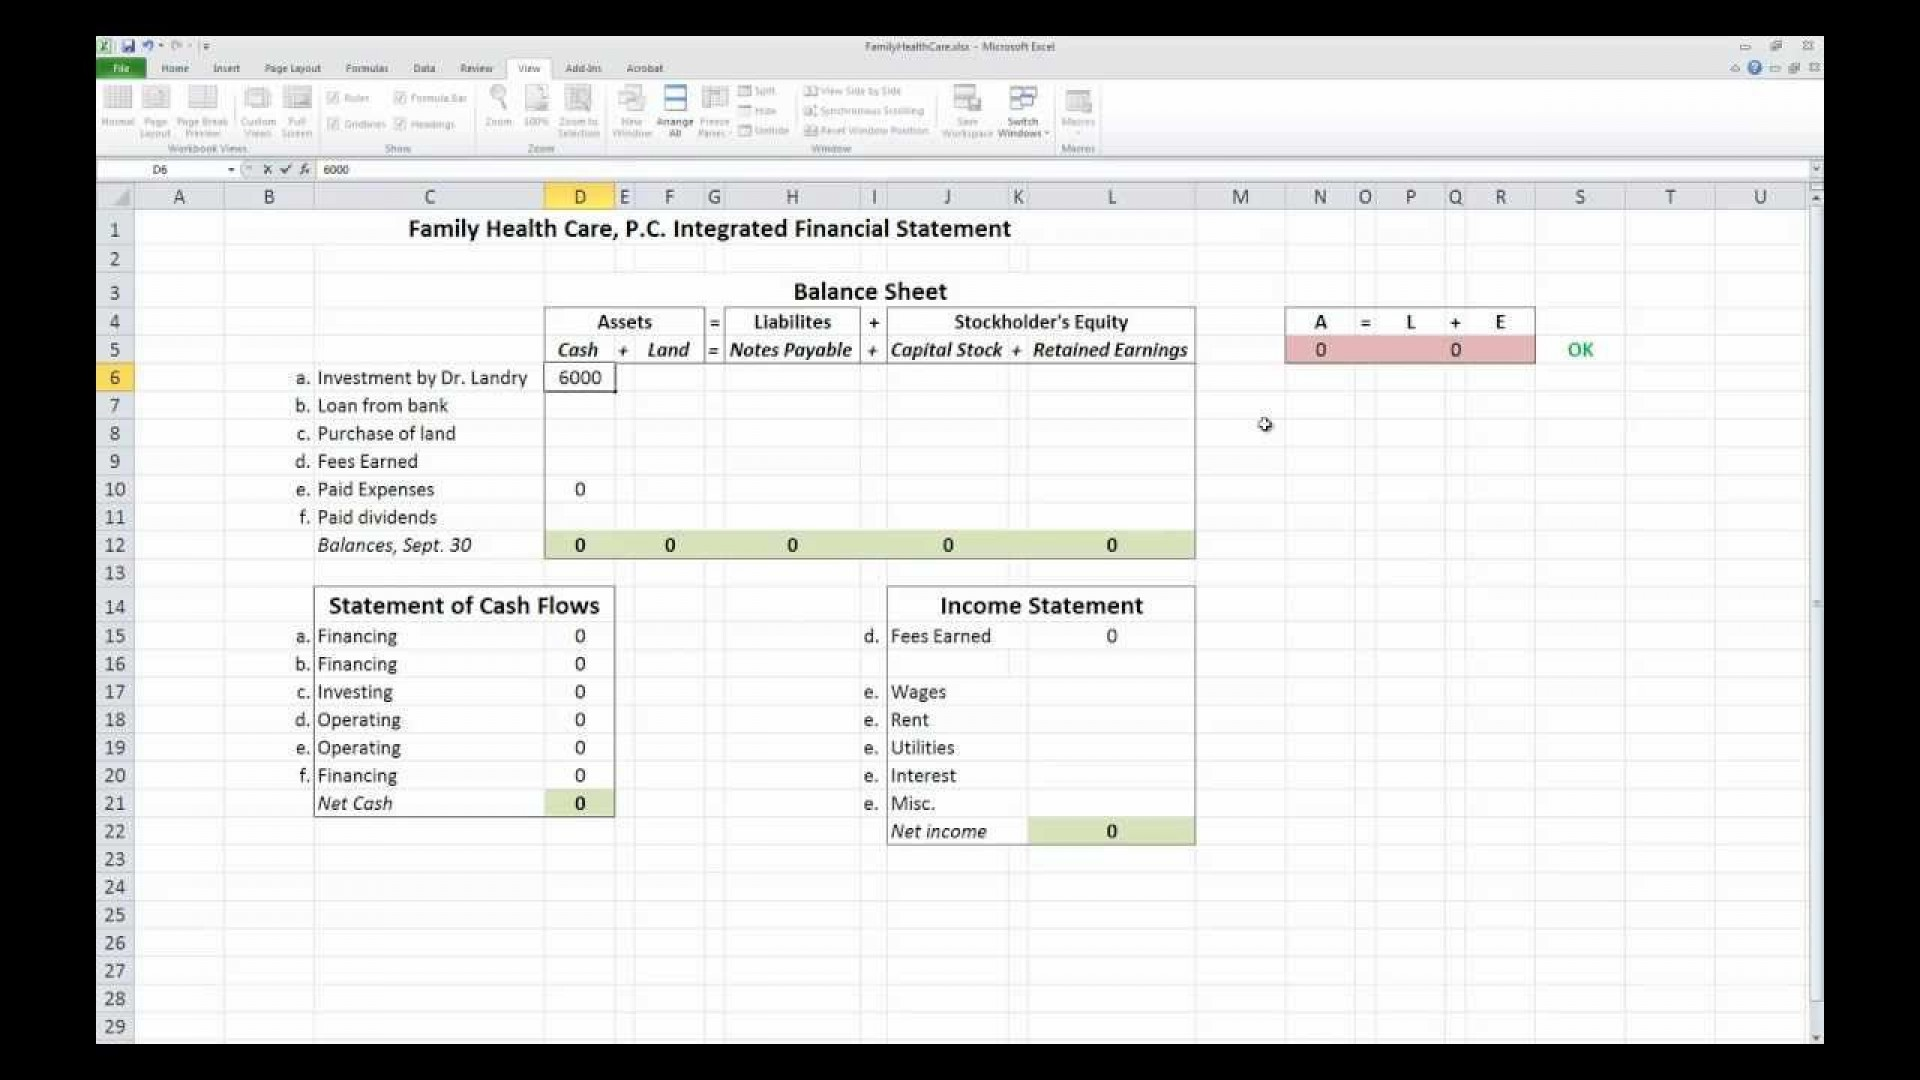 008 Impressive Financial Statement Template Excel Image  Consolidation Personal Free Download1920